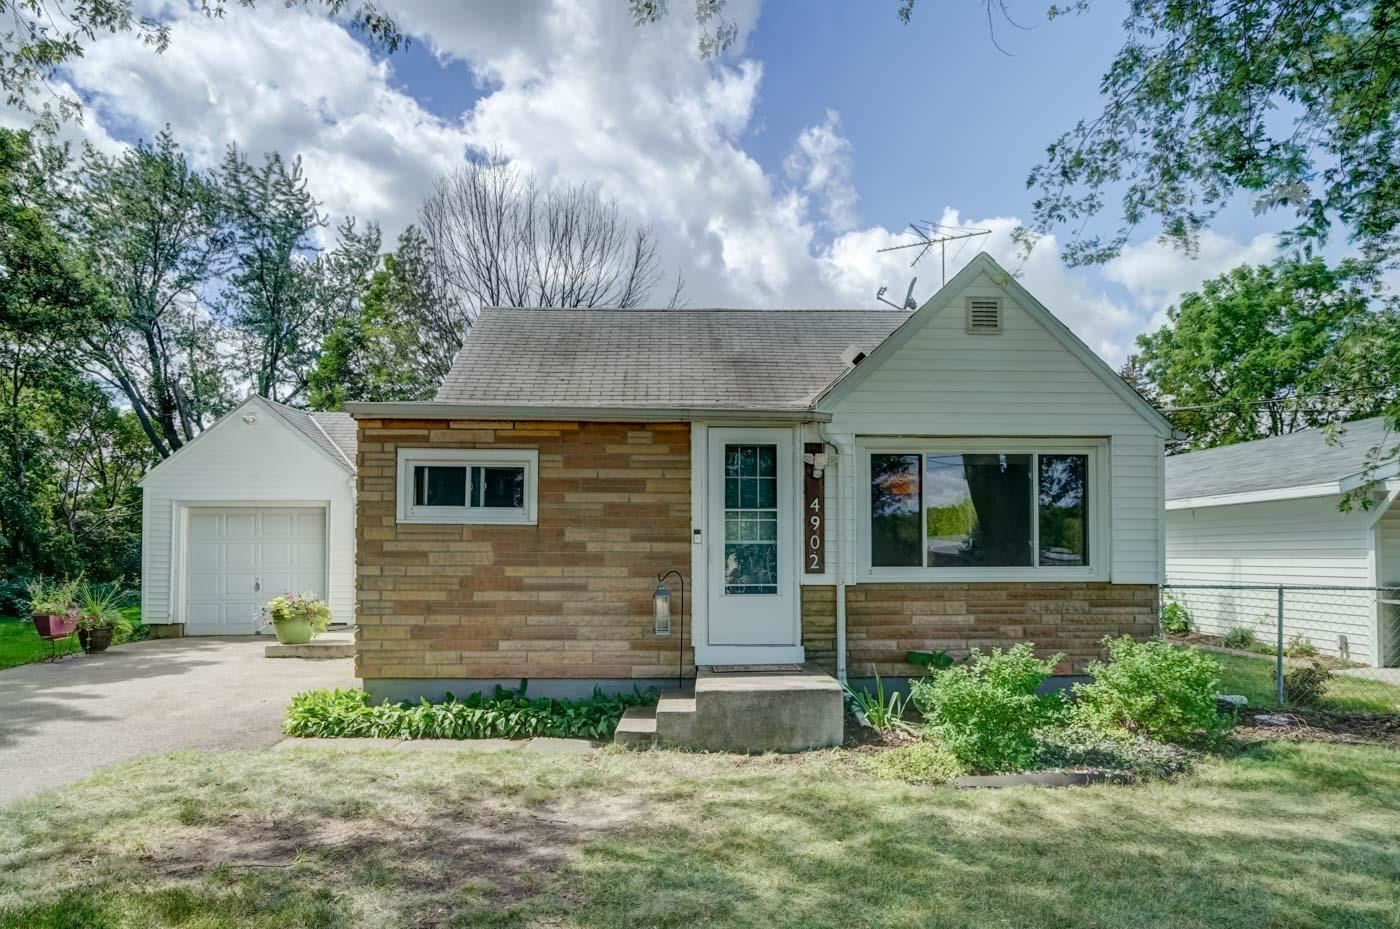 4902 Packers Ave, Madison, WI 53704 - #: 1918593